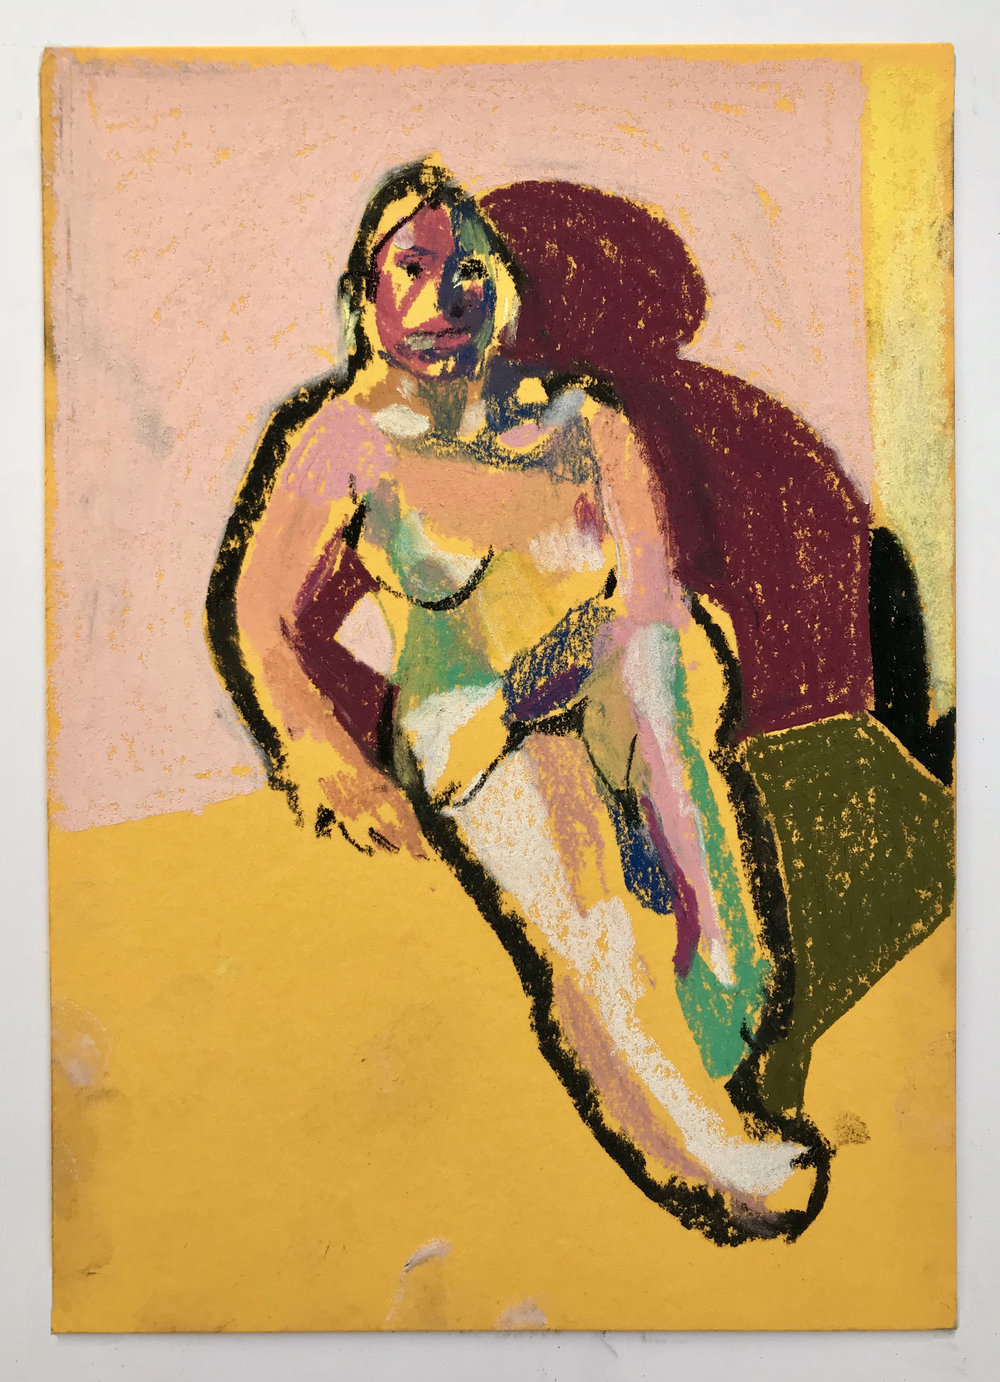 'Nude on yellow with pale pink wall', 2018, pastel, 21 x 14.8cm, SOLD